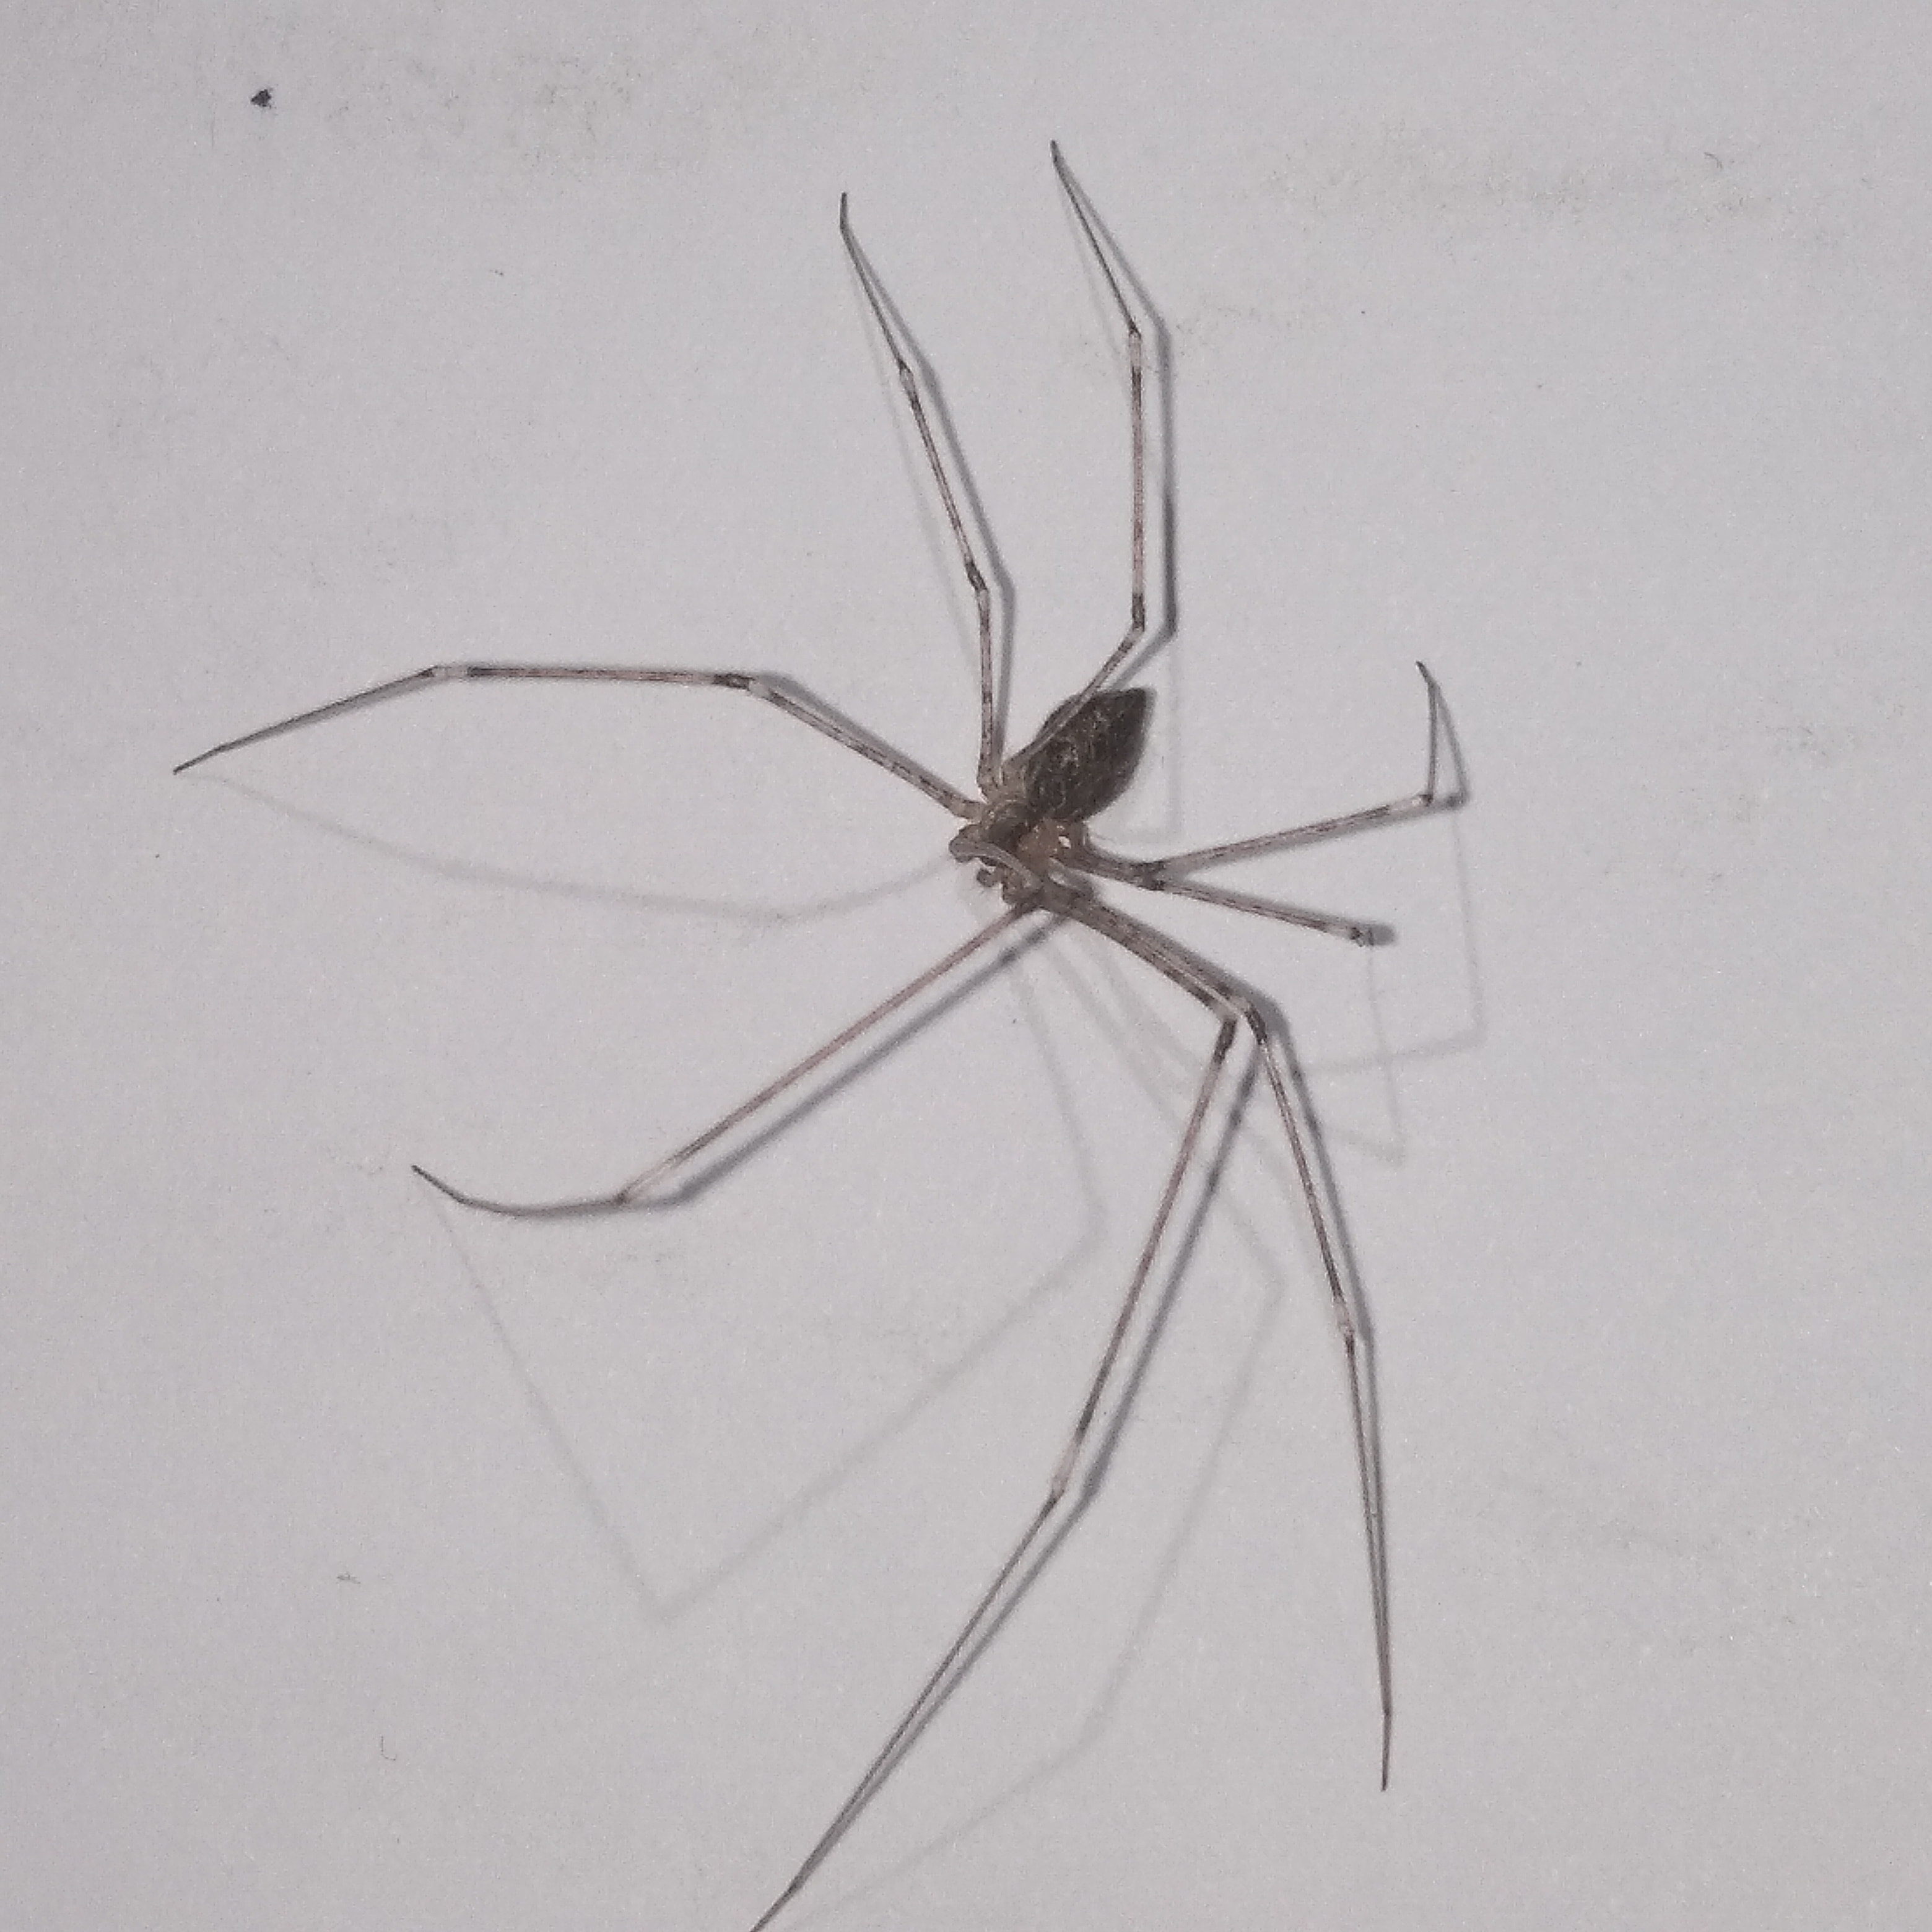 Picture of Crossopriza lyoni (Tailed Daddy Longlegs) - Dorsal